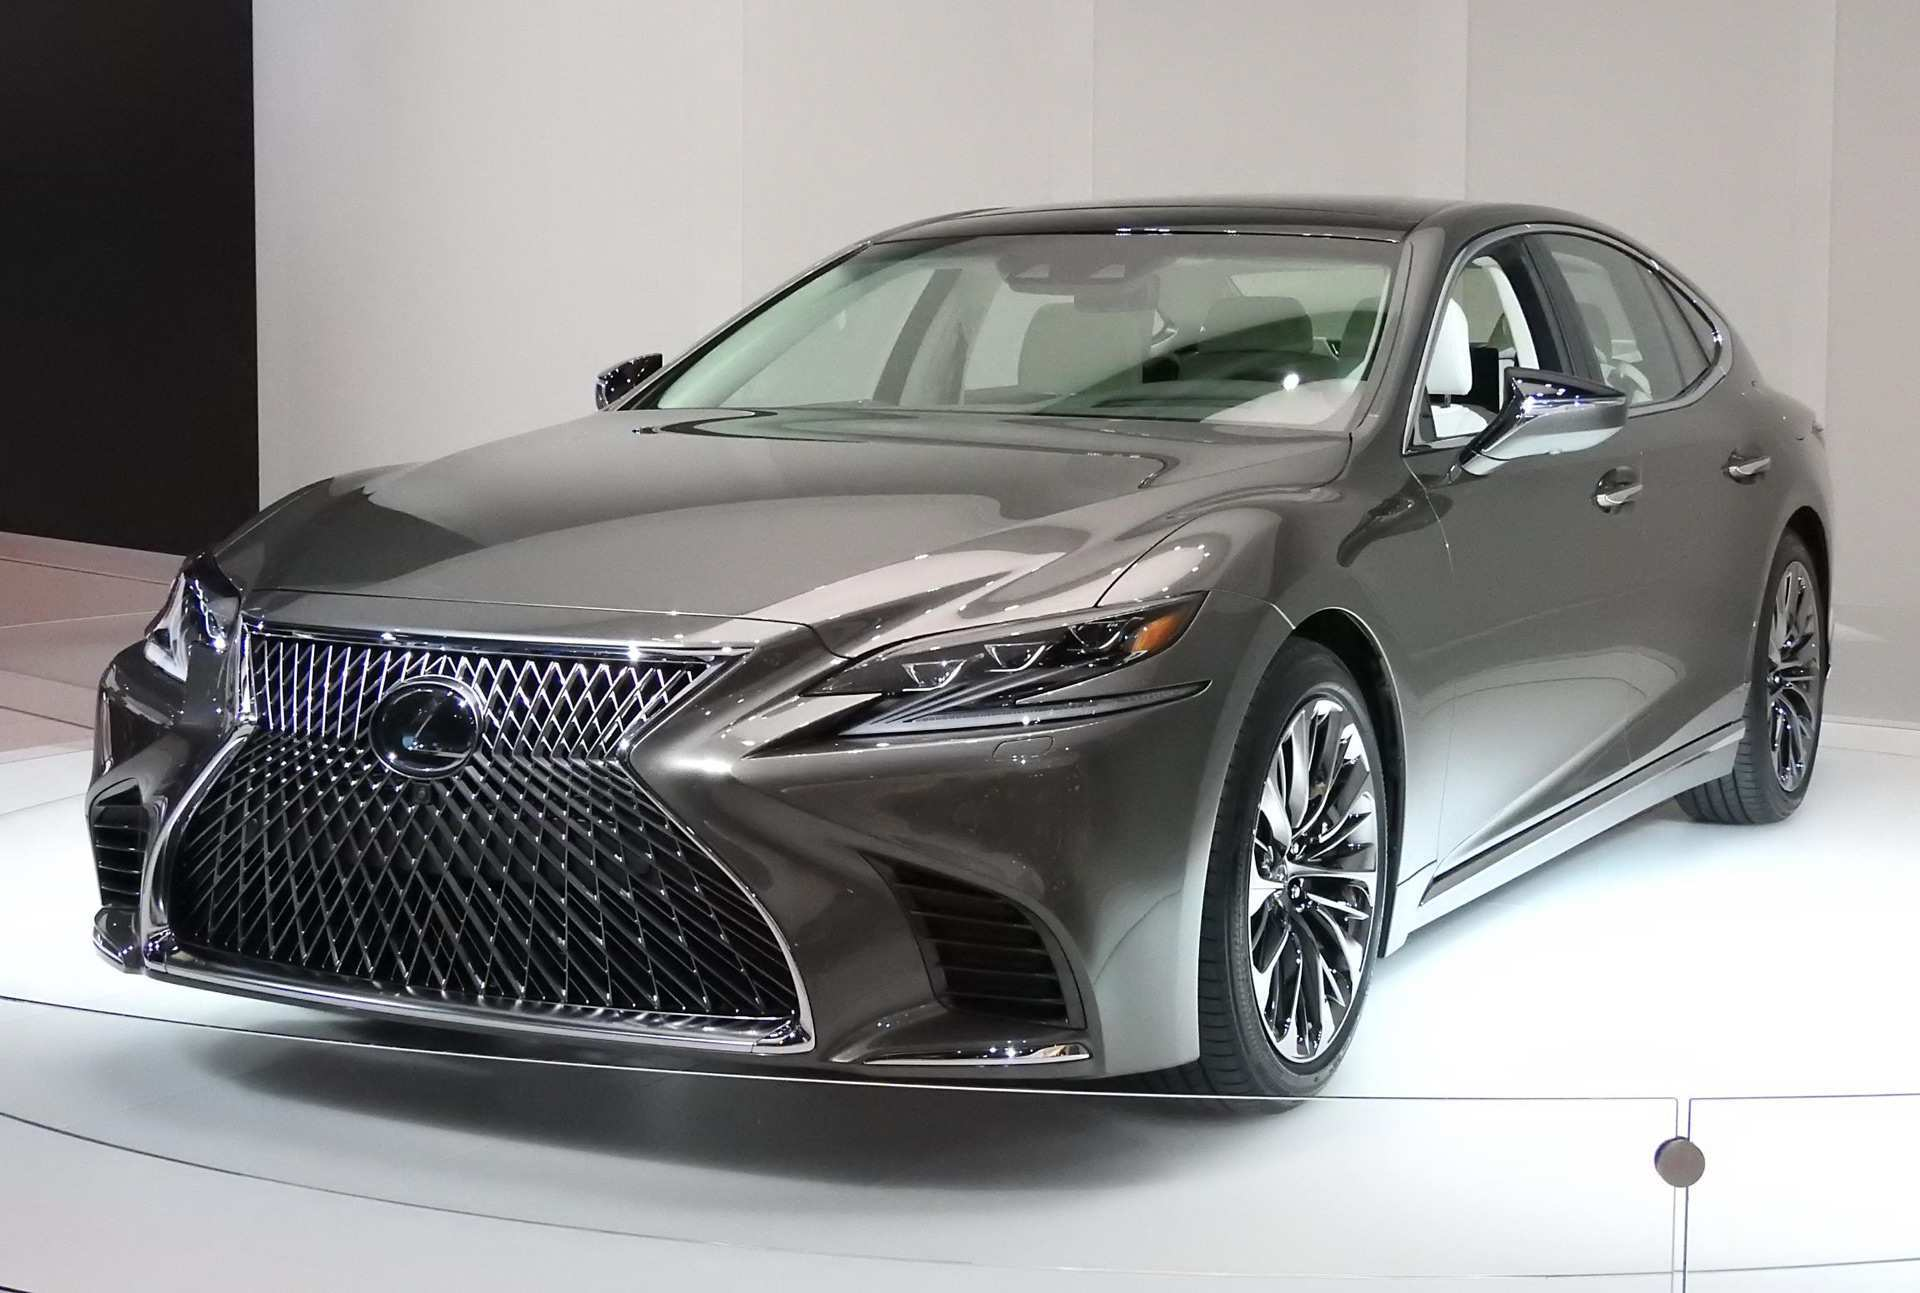 84 A 2020 Lexus LS Research New